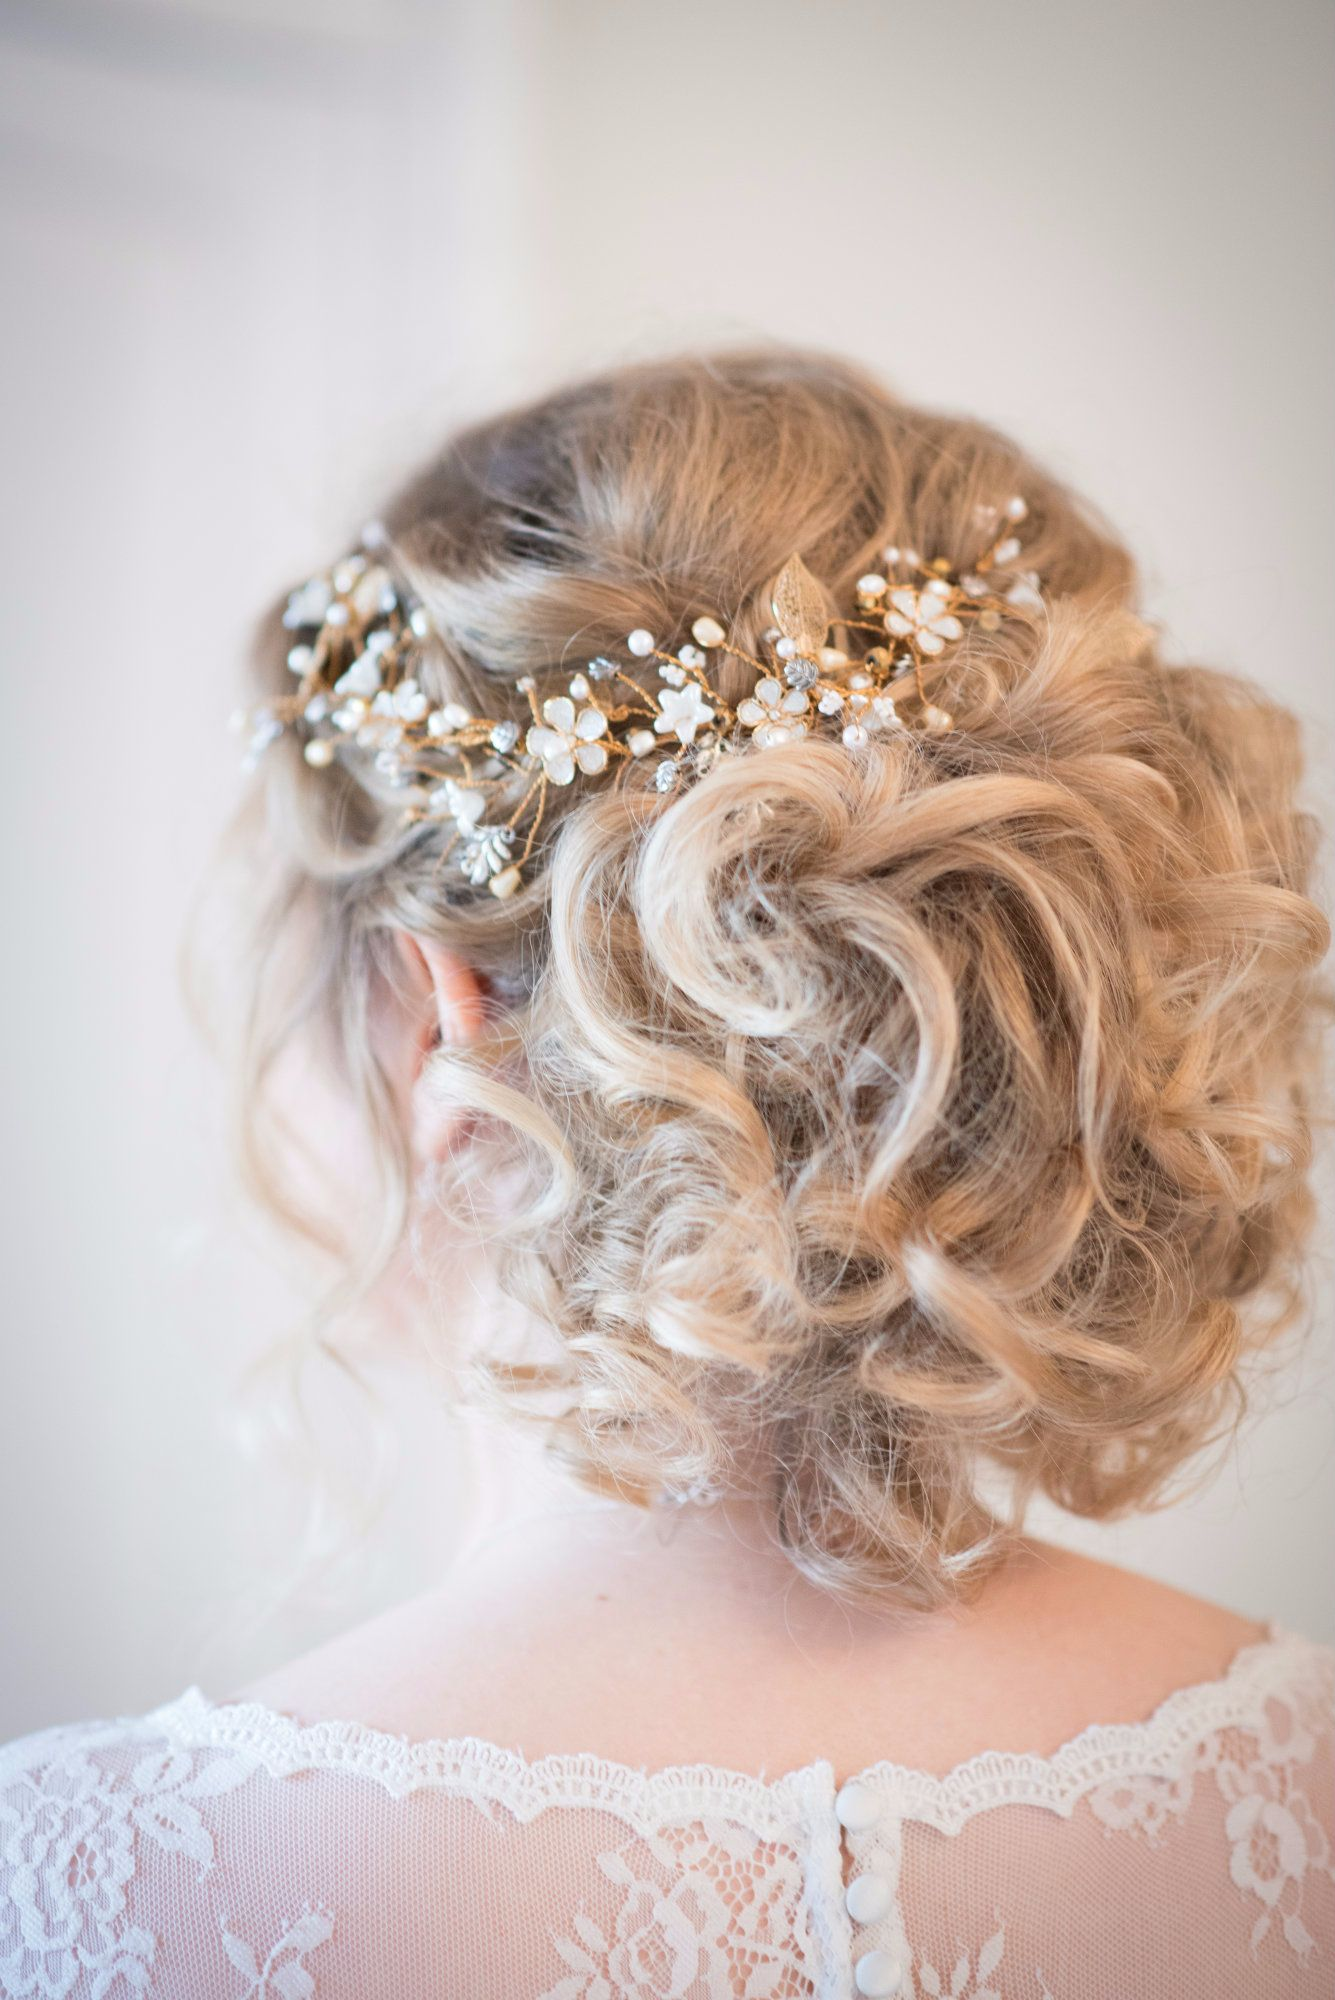 Bohemian-Bridal hair accessory by Beady Bride-UK (4)